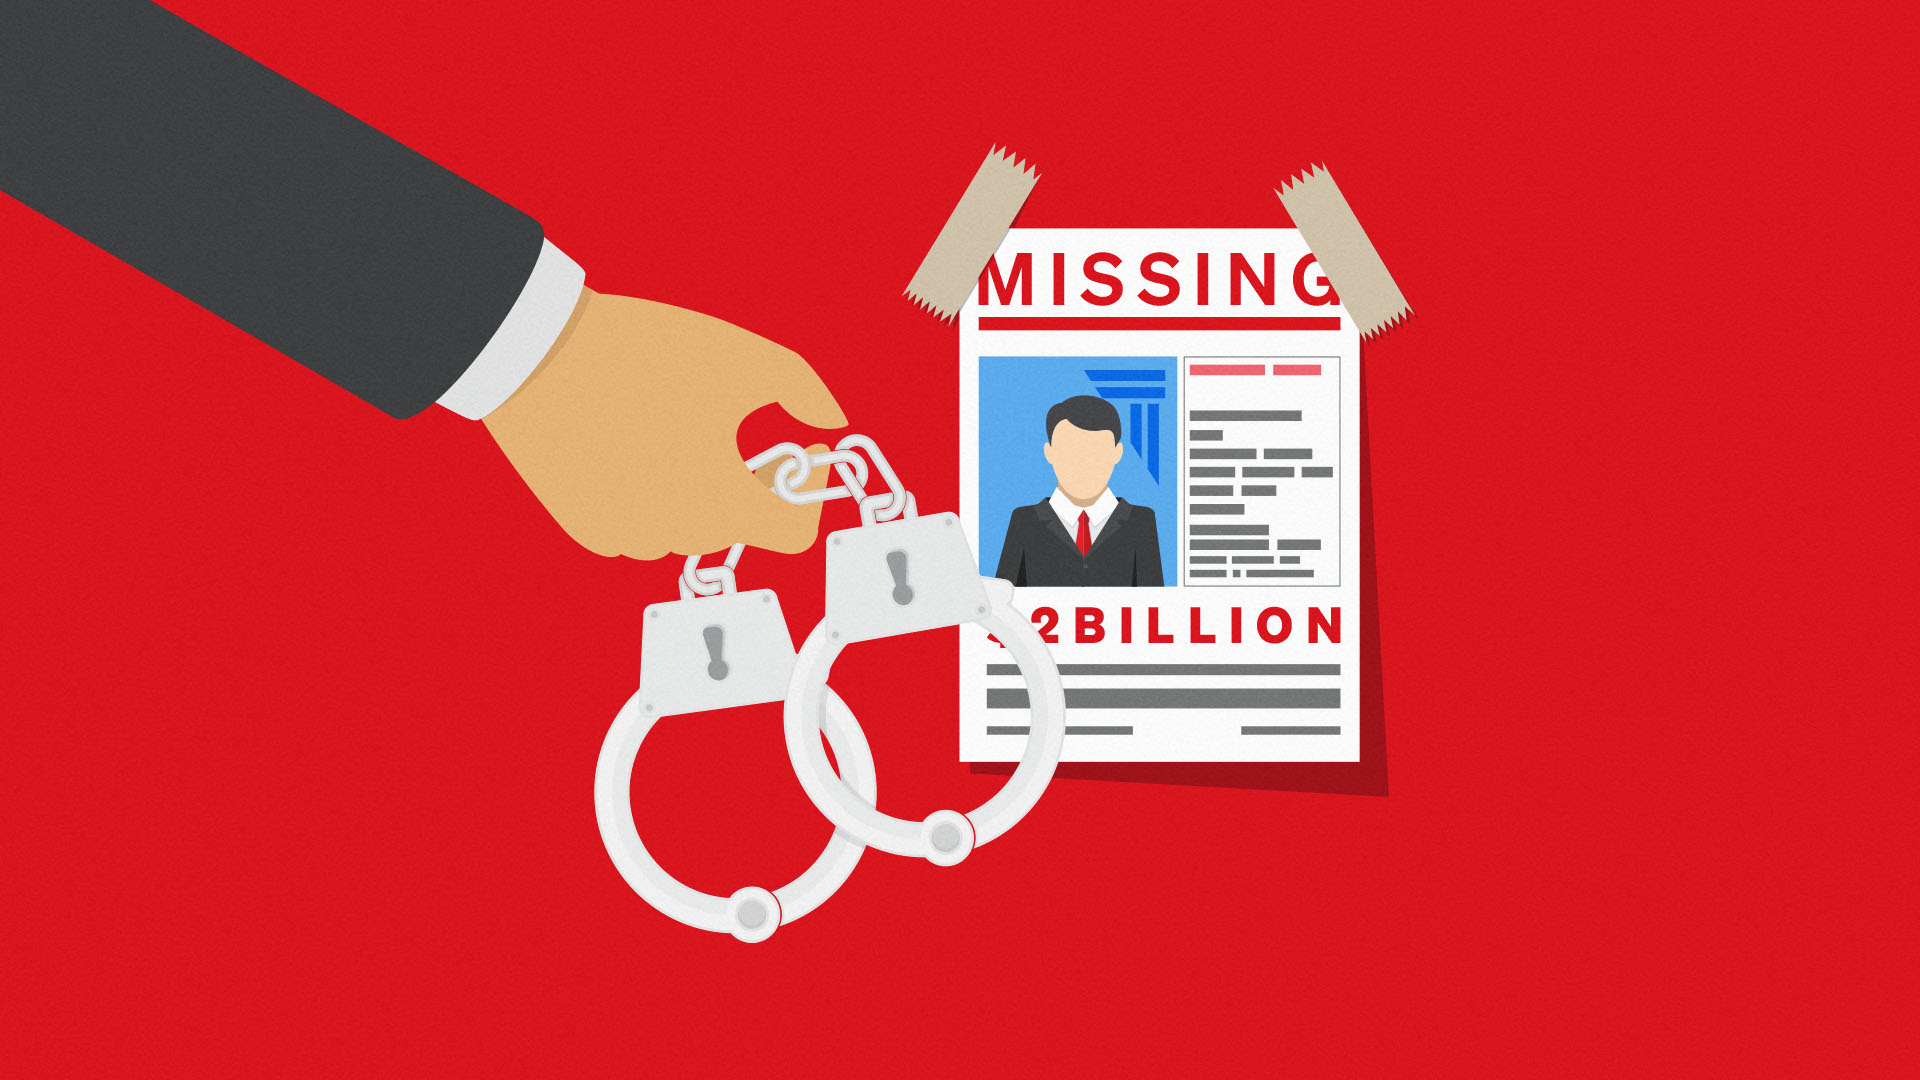 A pair of handcuffs in front of a missing poster symbolising missing Thodex CEO